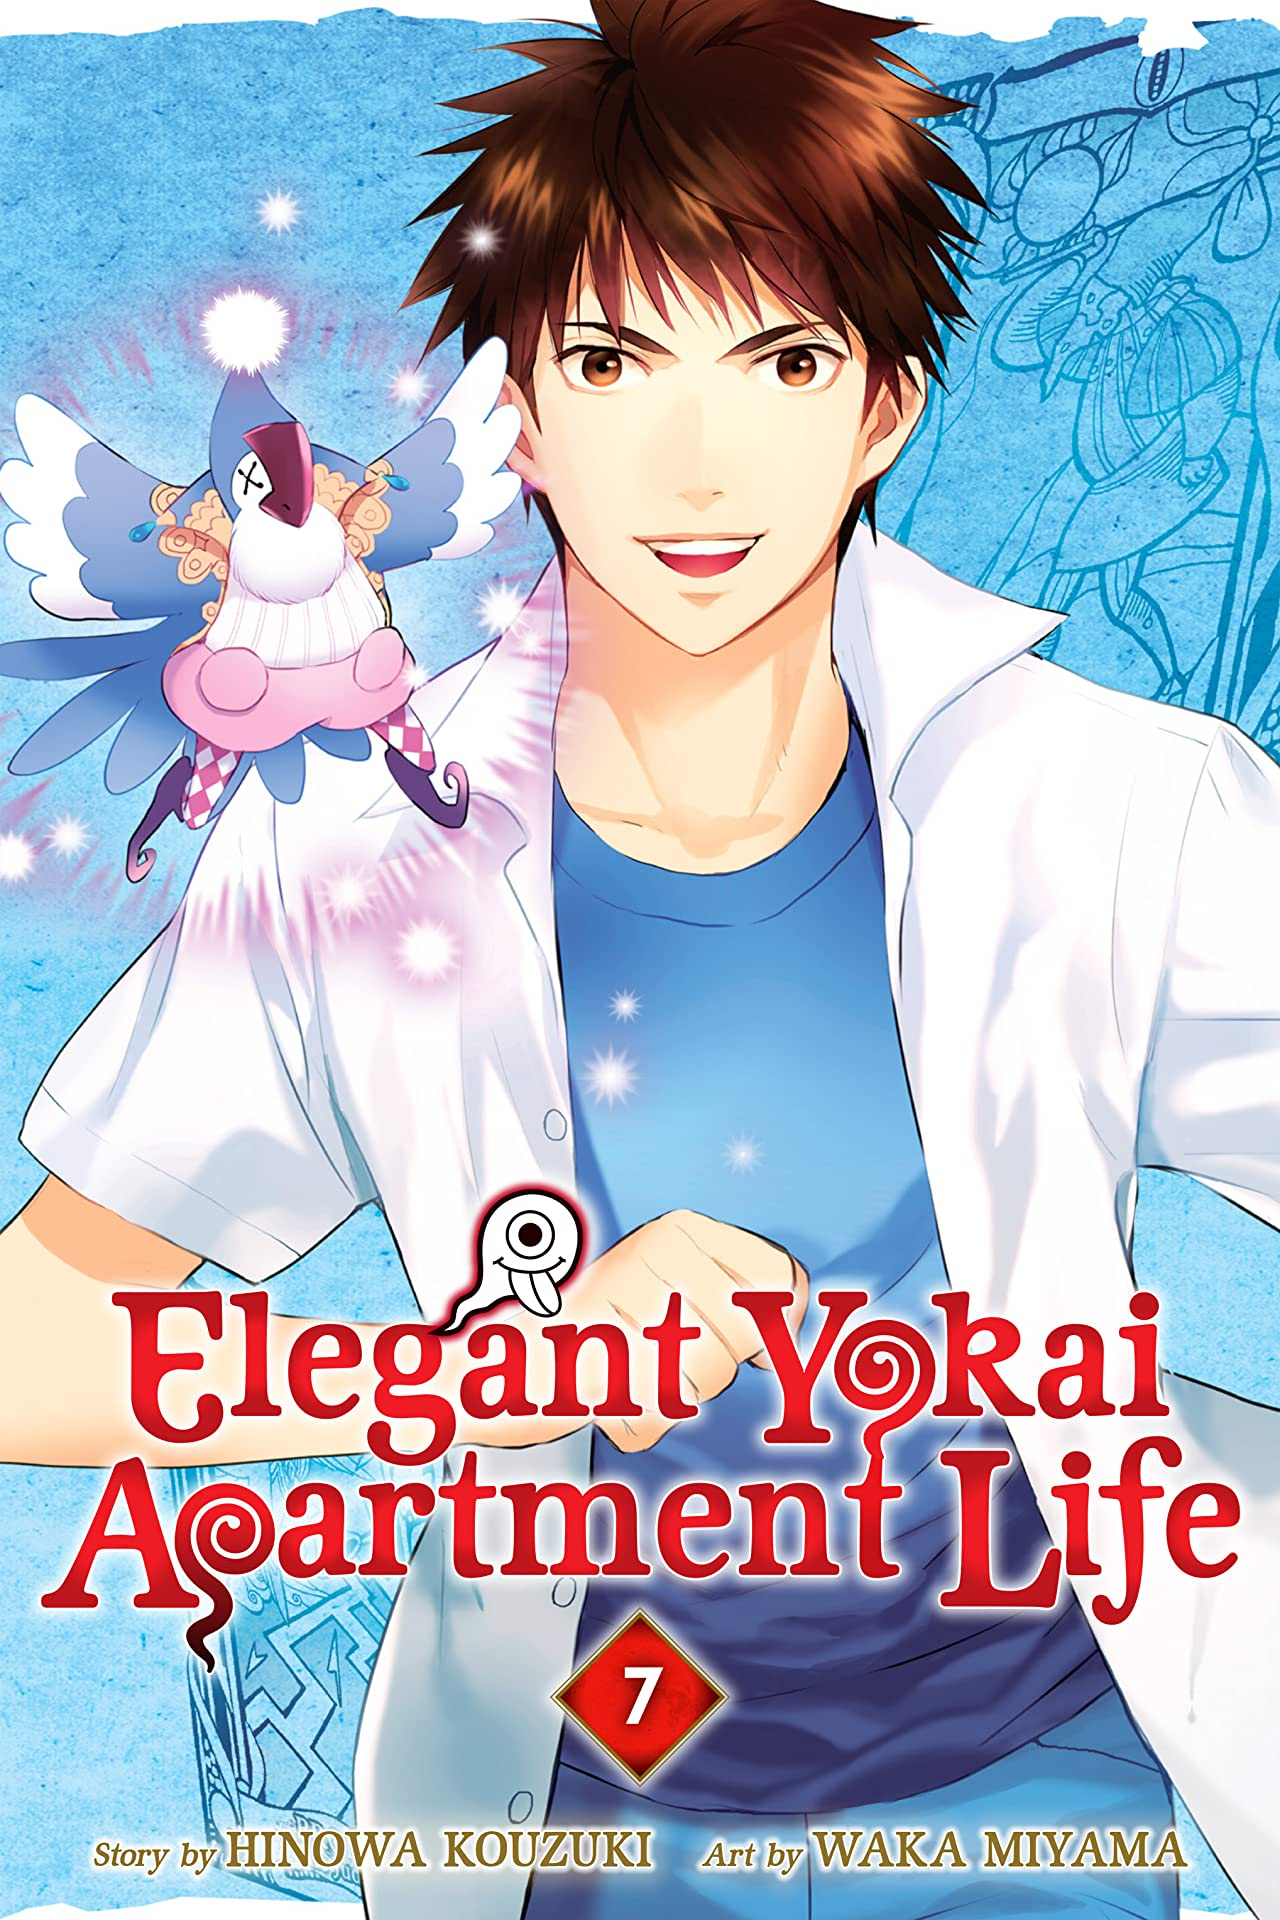 Elegant Yokai Apartment Life Vol. 7